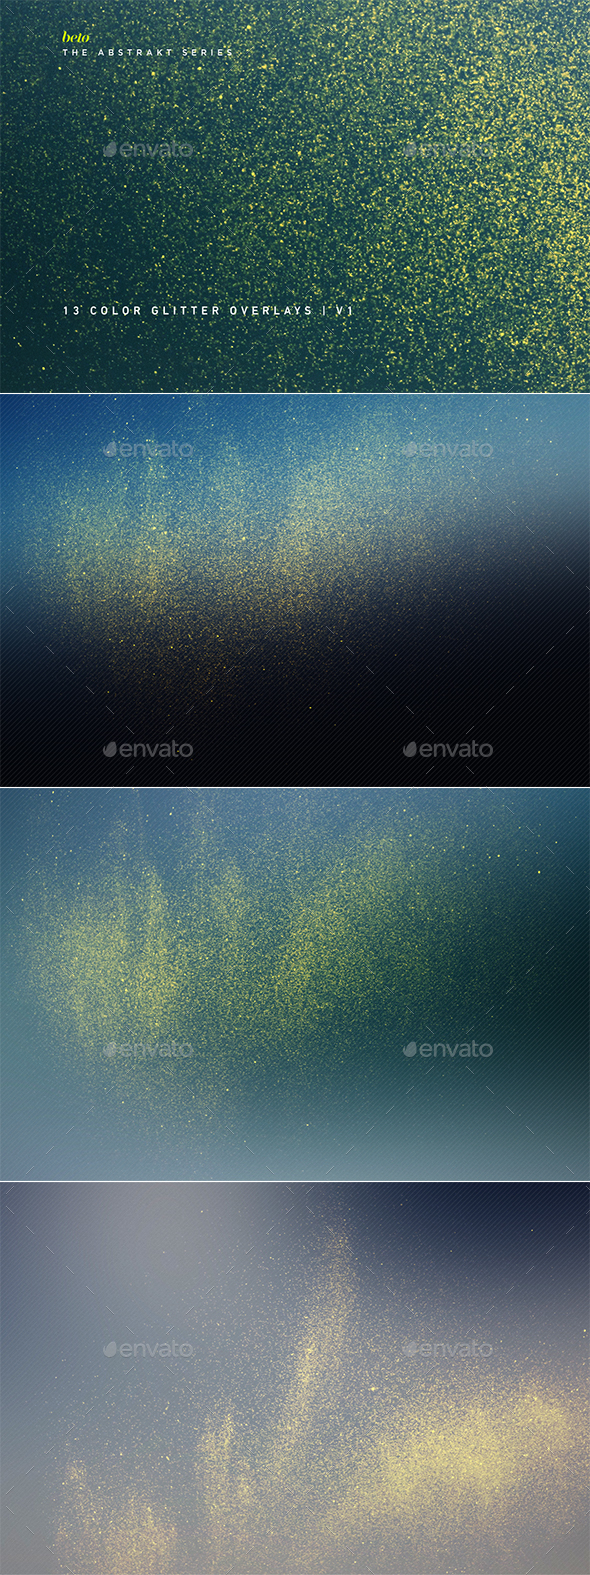 Color Glitter Overlays V1 - Abstract Backgrounds